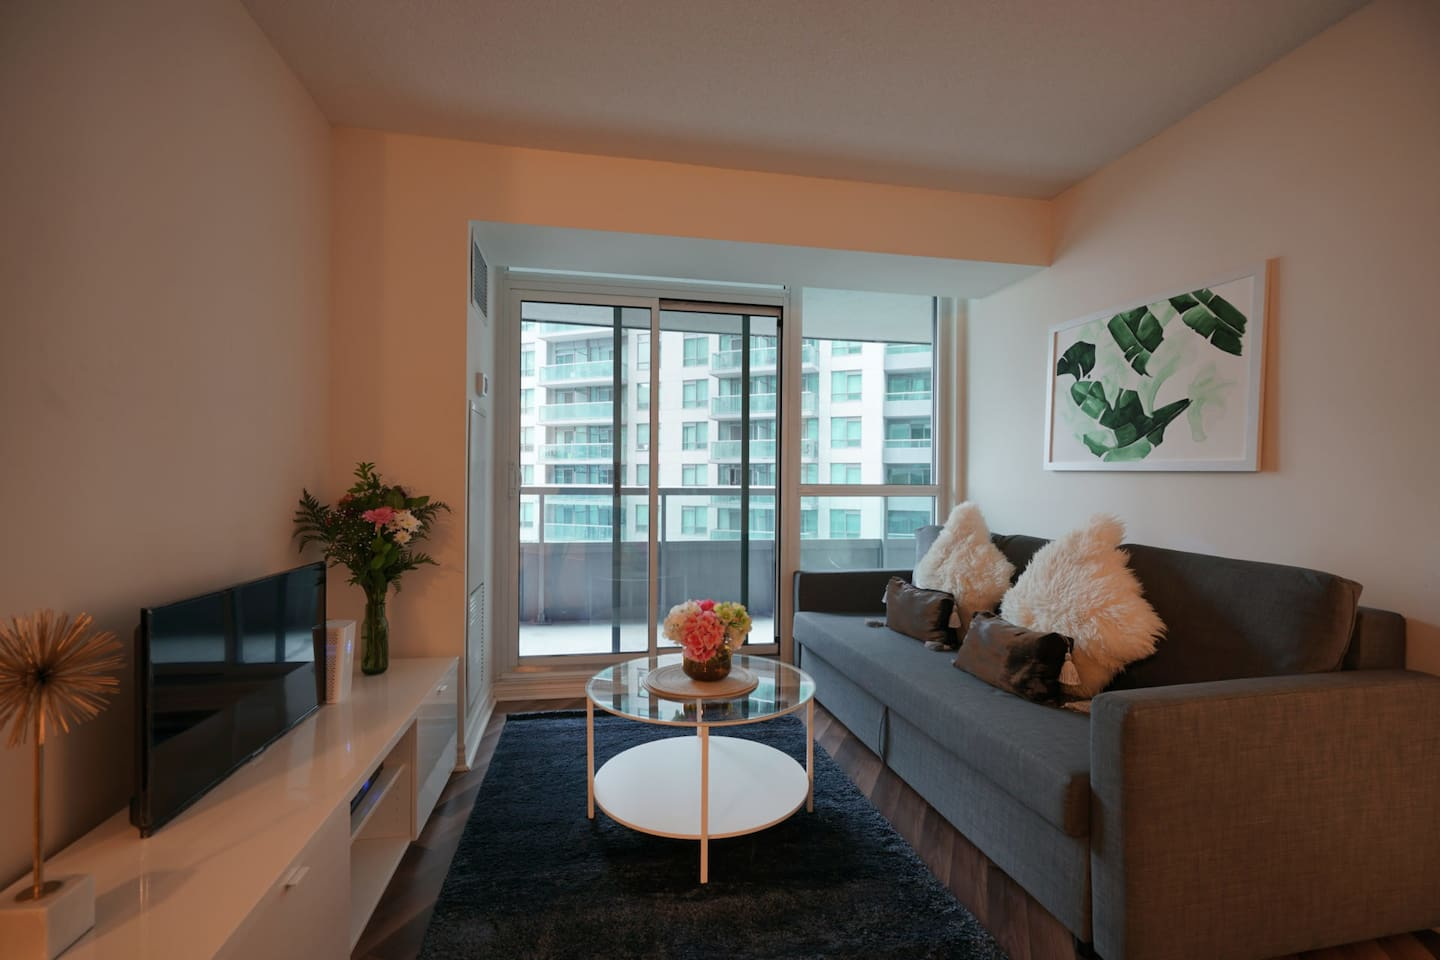 2 Bedroom and 2 Full Bathroom in Heart of the City - Apartments for ...